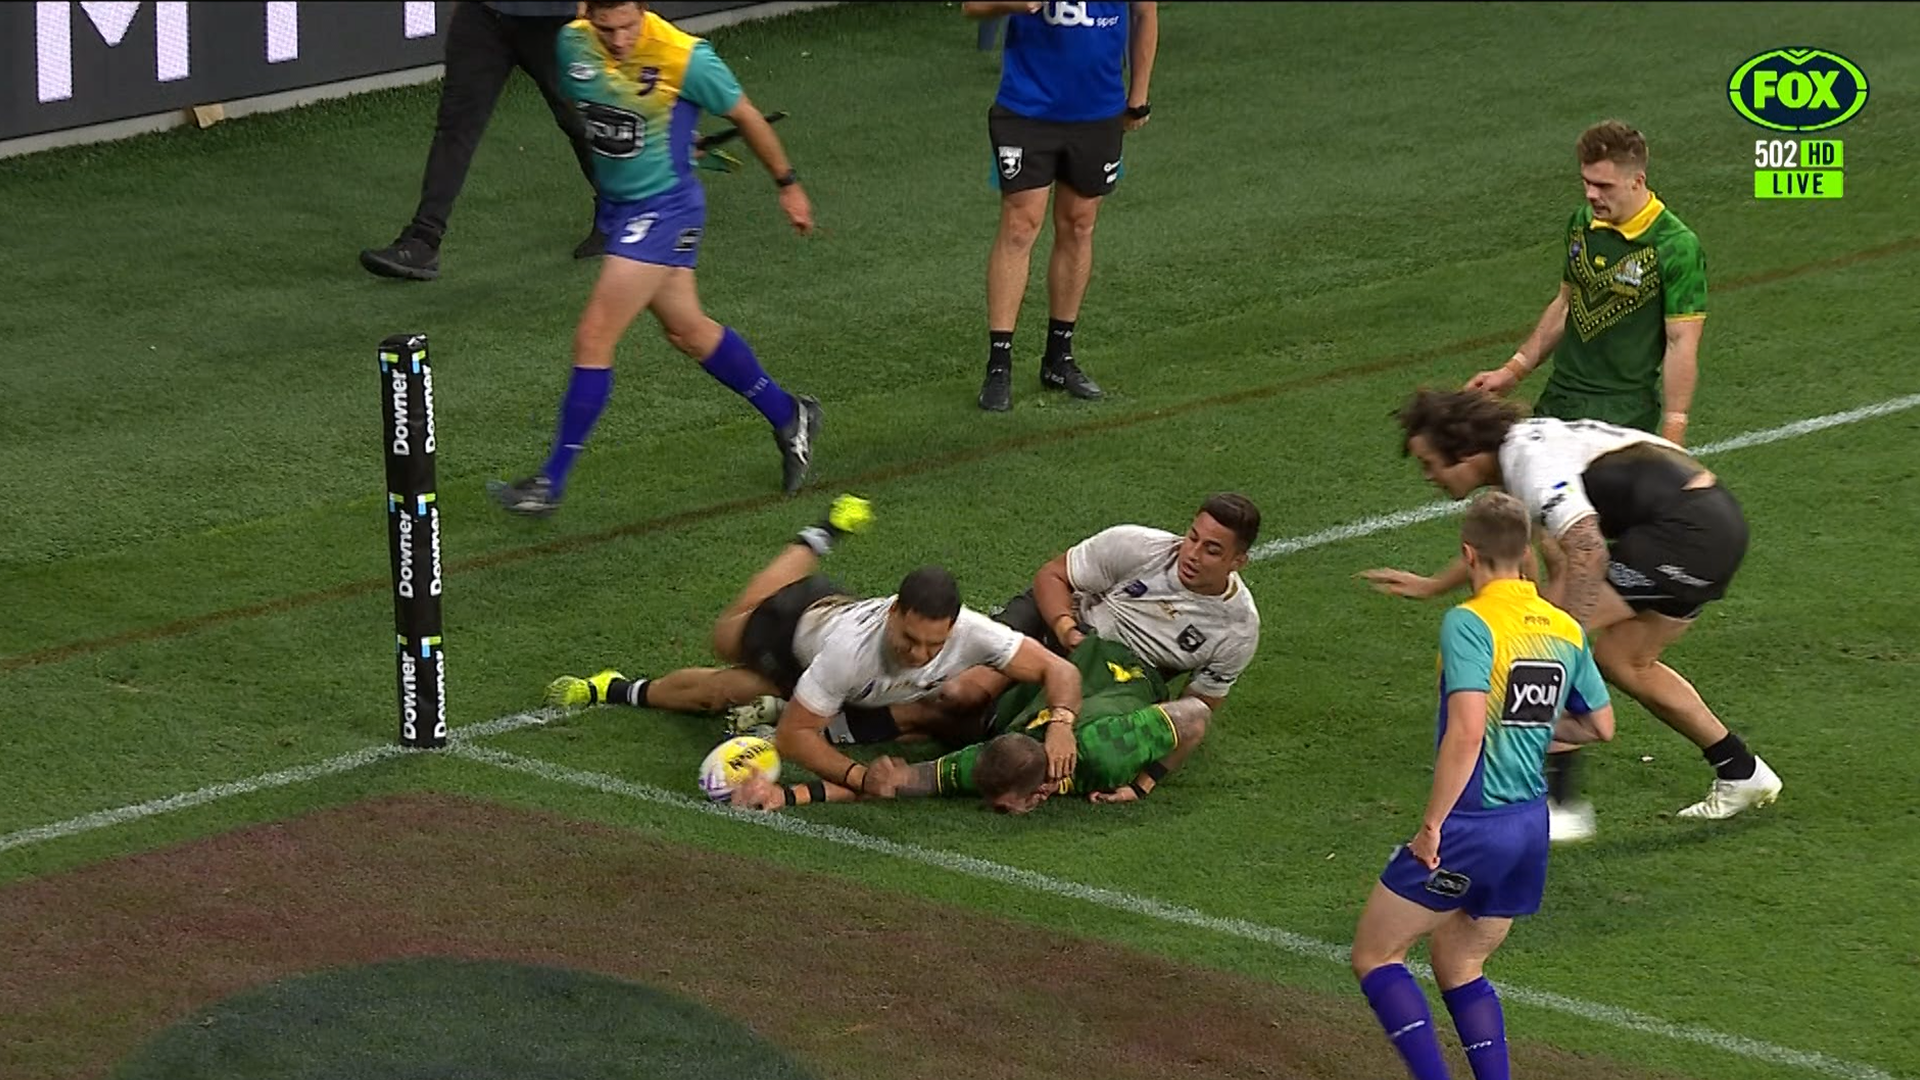 World Cup Nines: 'Referee blunder' mars Australia's Nines victory as Feldt awarded controversial try